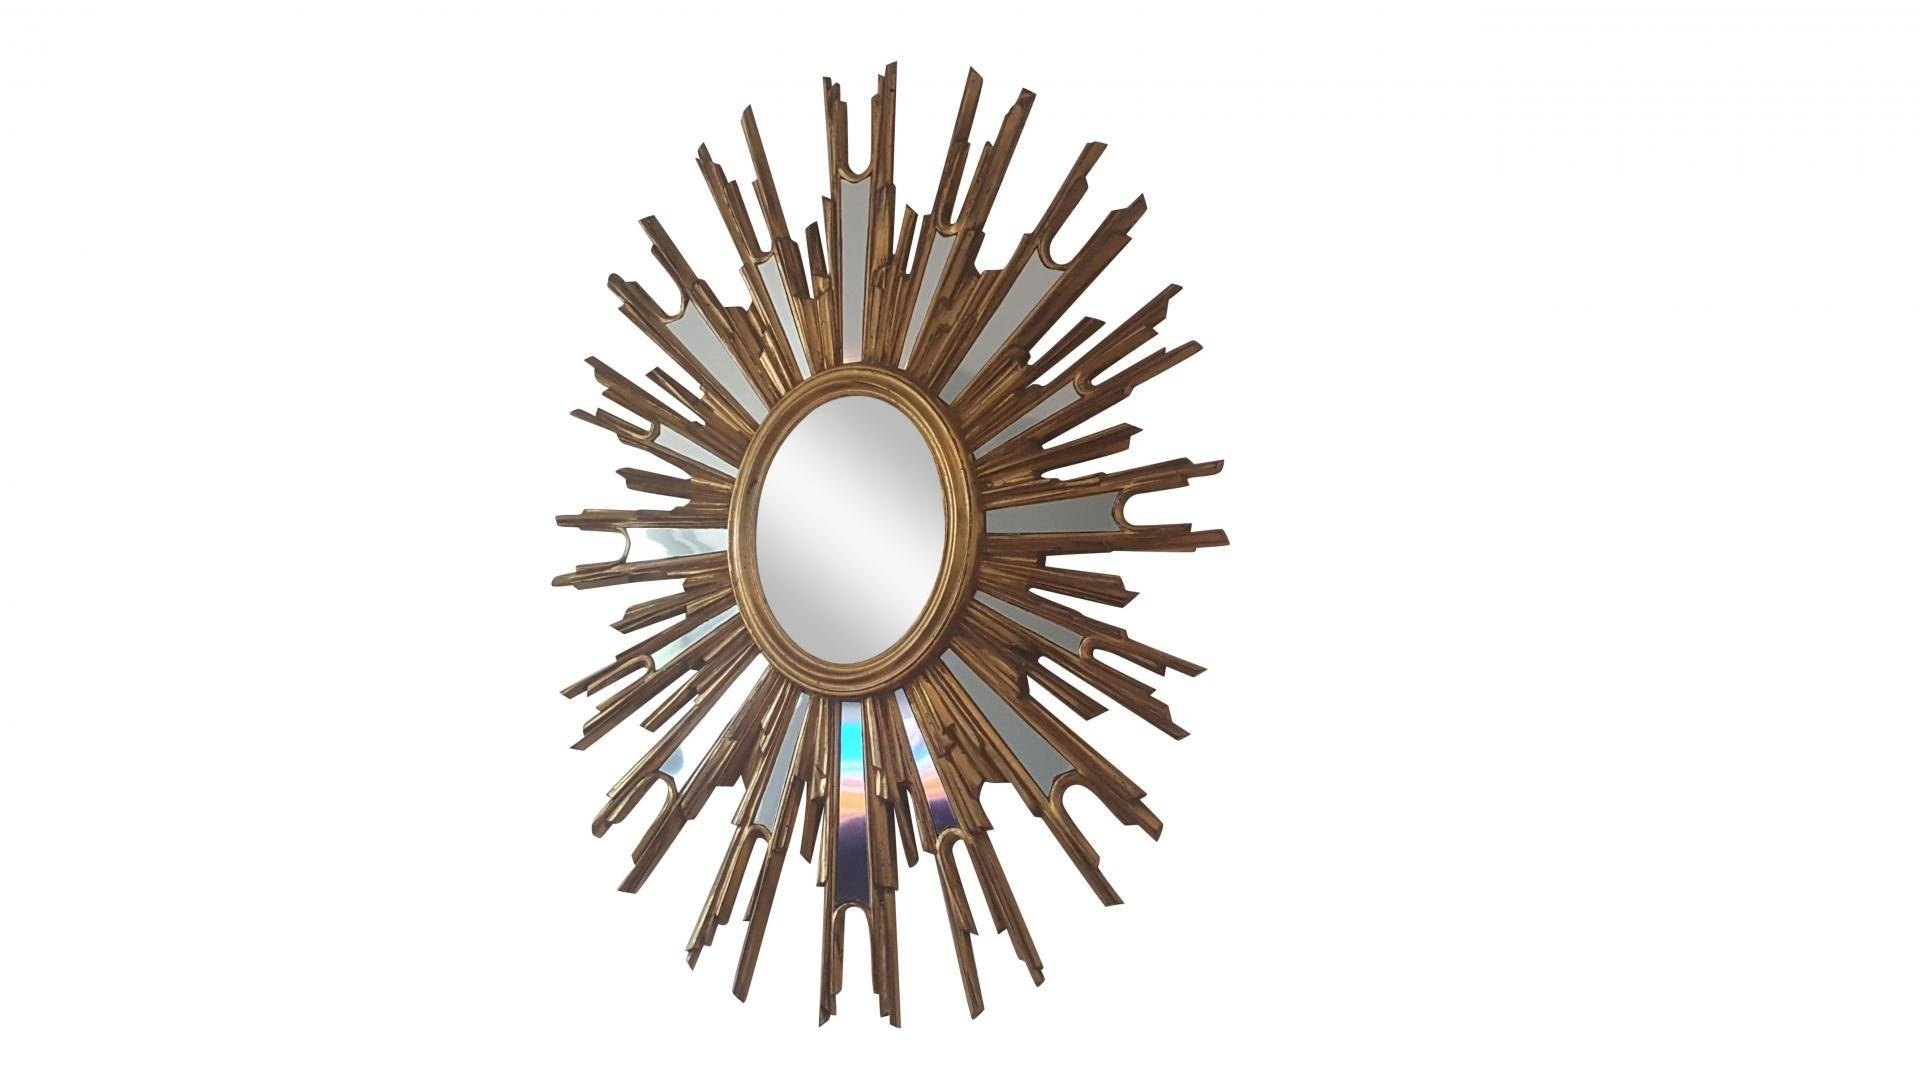 French Large Sunburst Mirror, 1970S For Sale At Pamono with regard to Extra Large Sunburst Mirrors (Image 10 of 25)